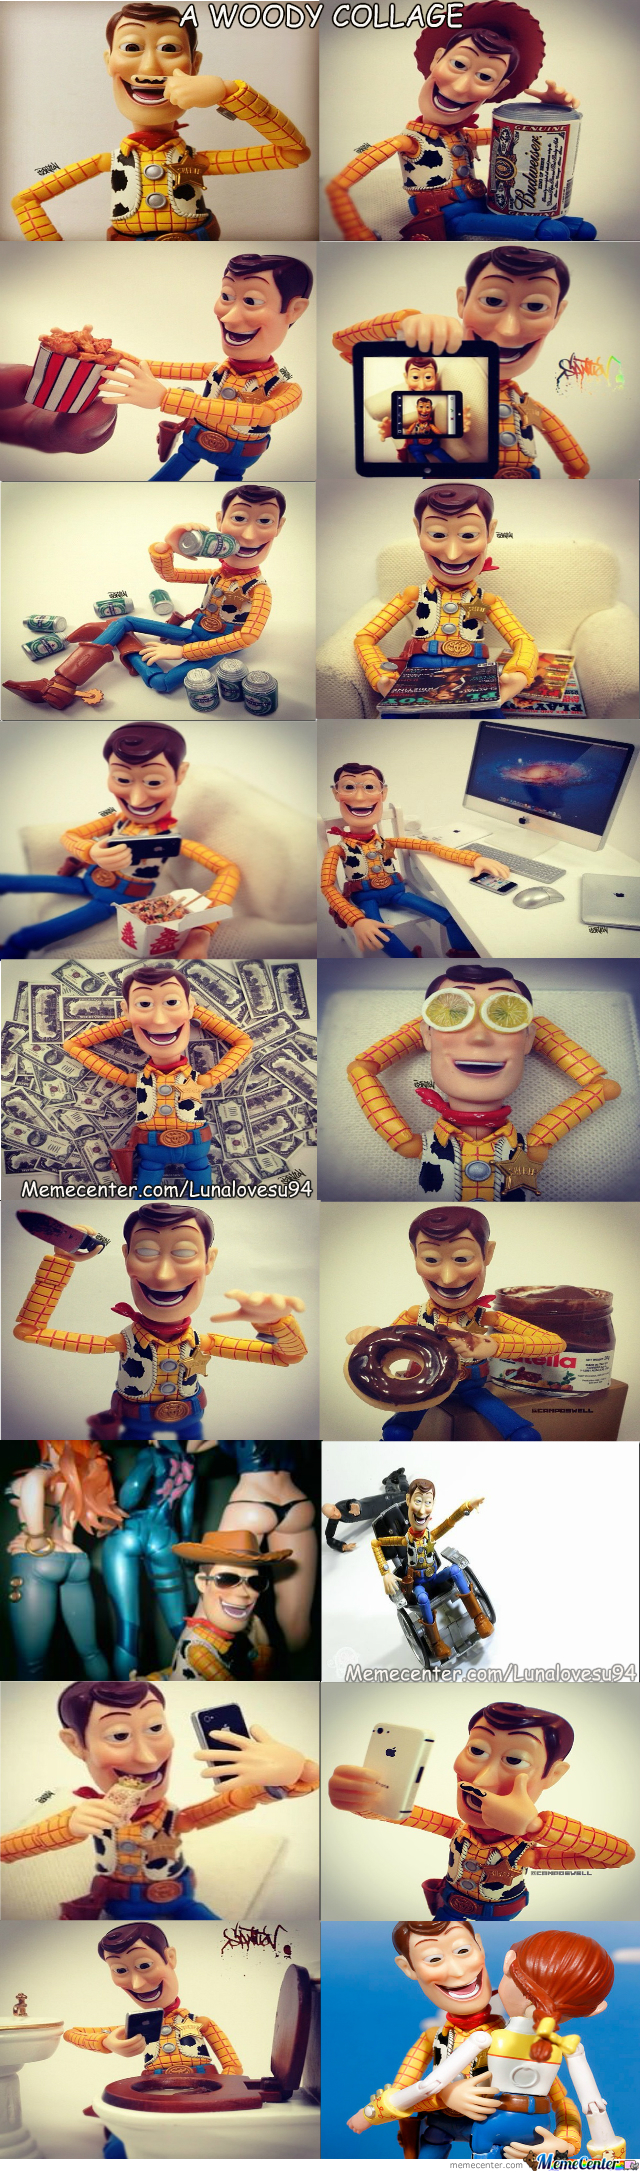 A Woody Collage: The Life Of Woody